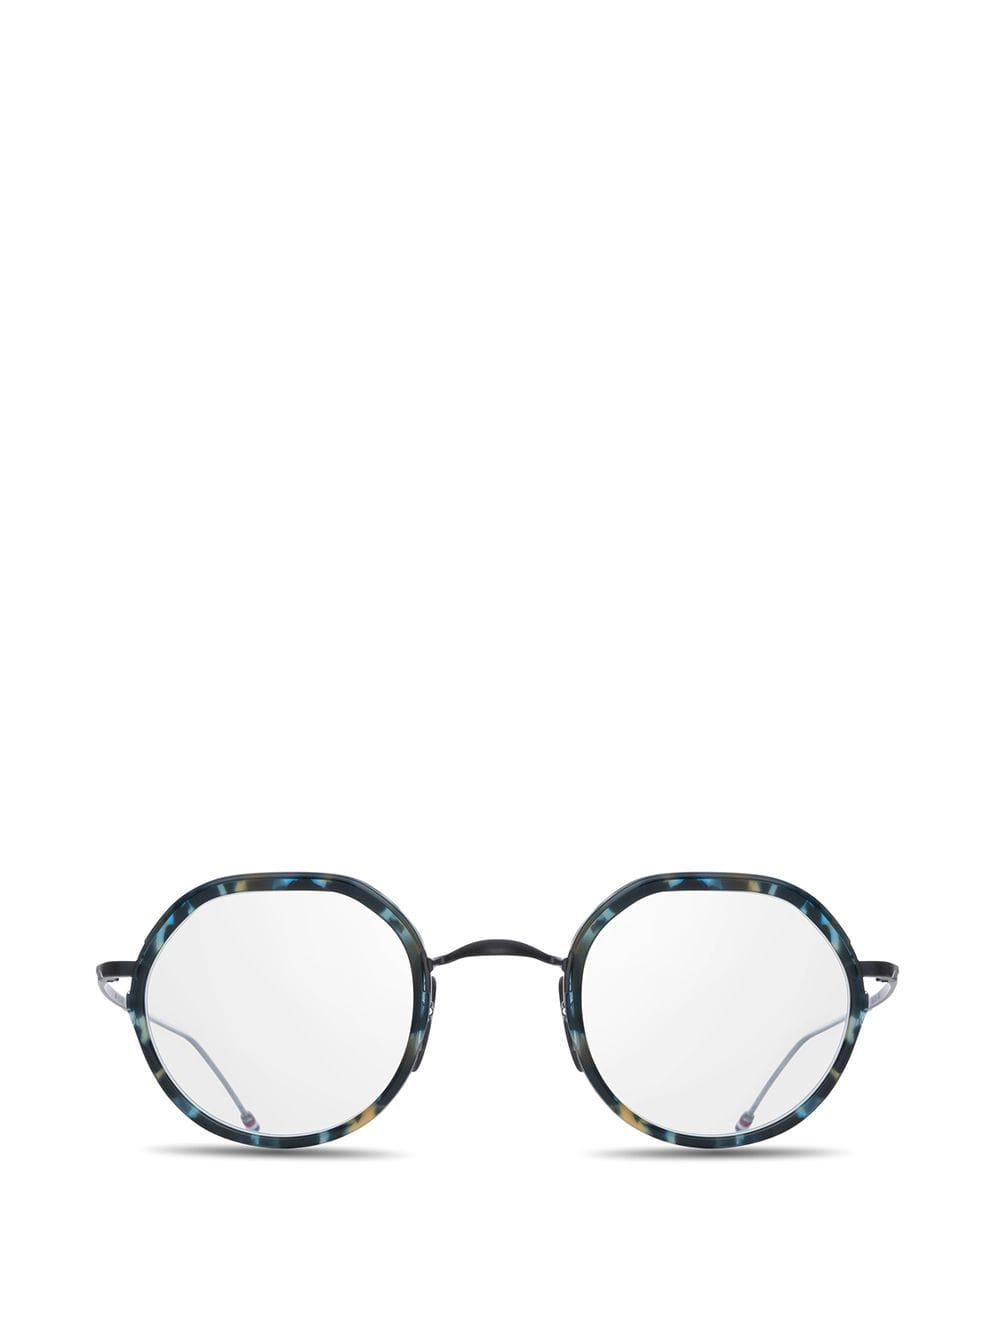 3f0b528bbd97 Lyst - Thom Browne Round-frame Glasses in Blue for Men